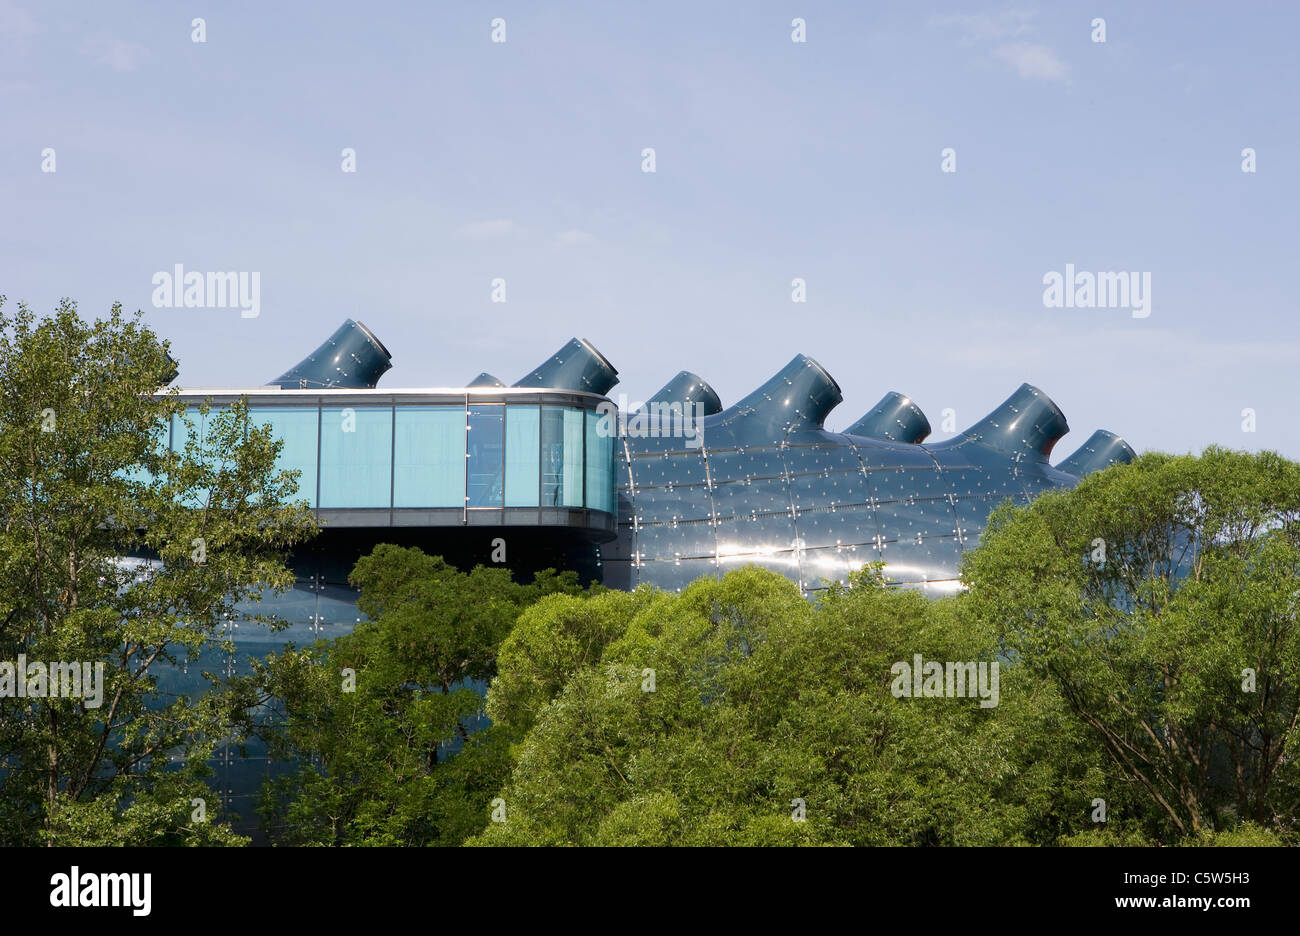 Container Haus Graz Graz Art Museum Stock Photos Graz Art Museum Stock Images Page